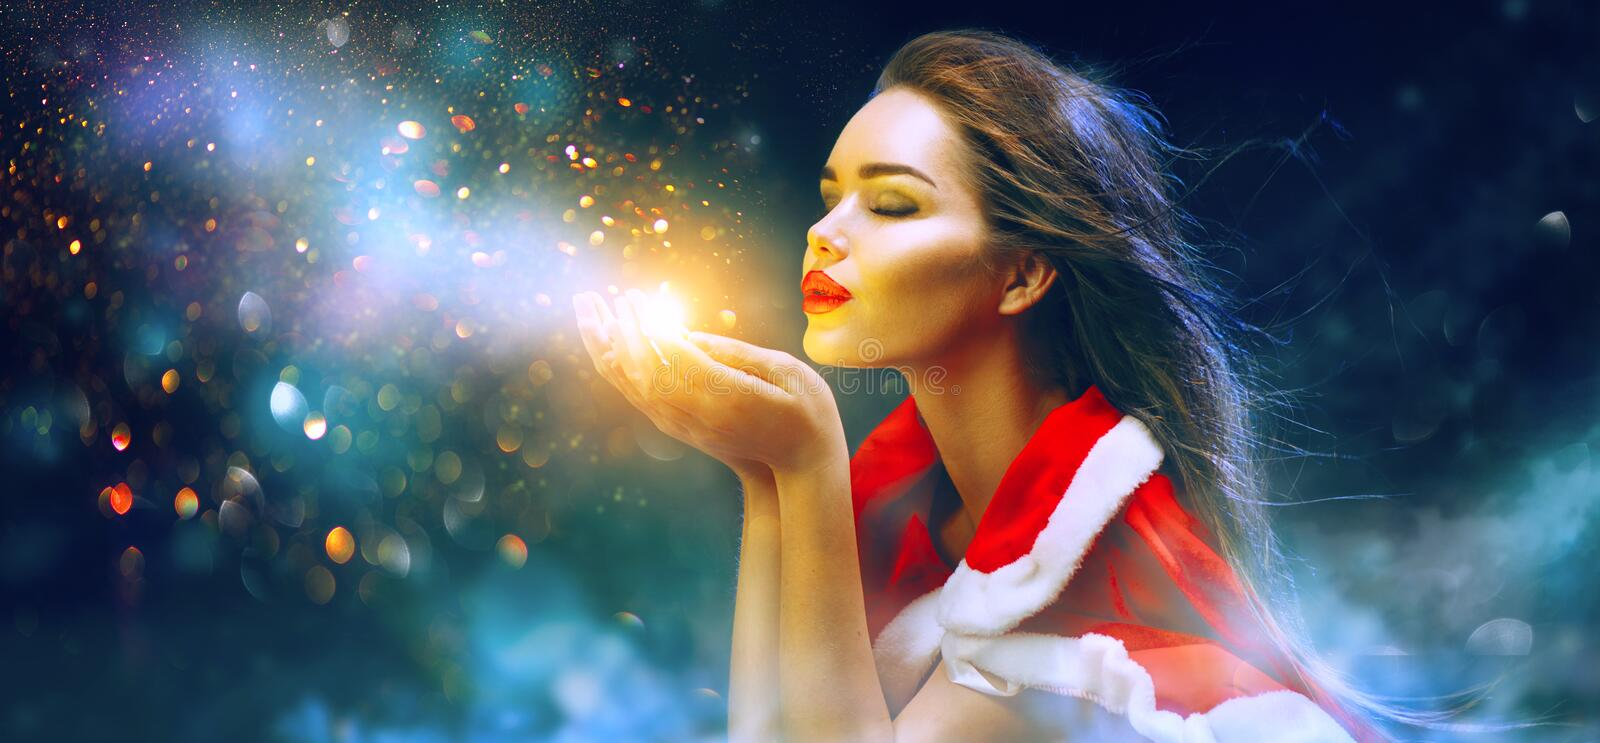 Christmas scene. Santa. Brunette young woman in party costume blowing snow stock image